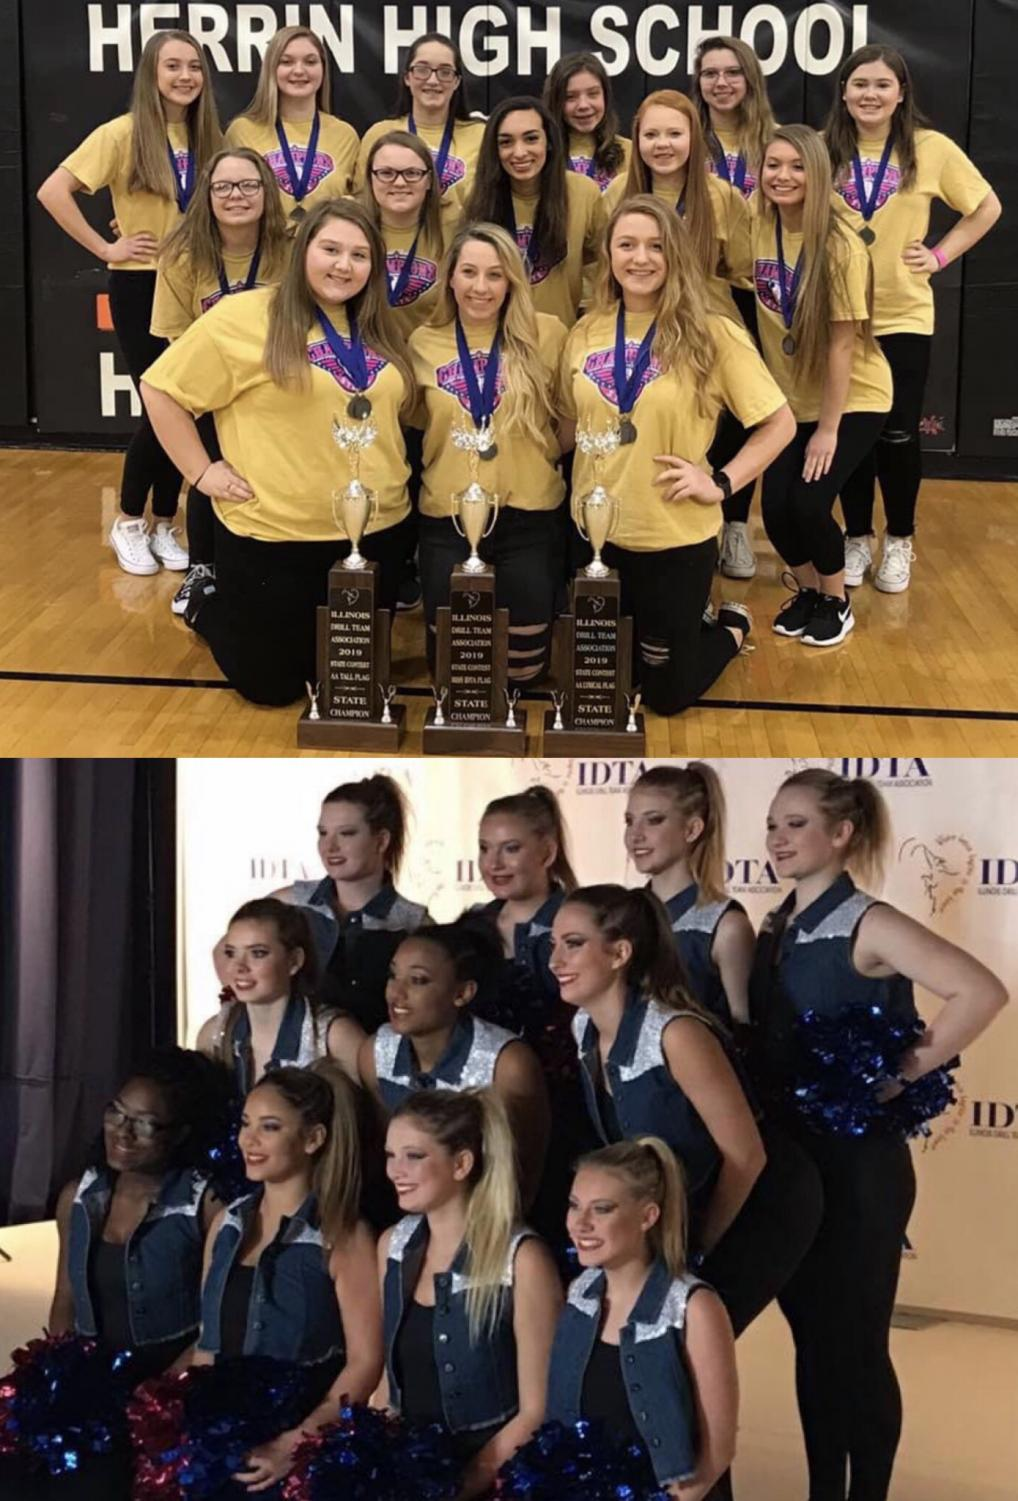 The flag team (above) shows off their brand new trophies from state.  The dance team (below) prepares for their pom performance at the state competition.